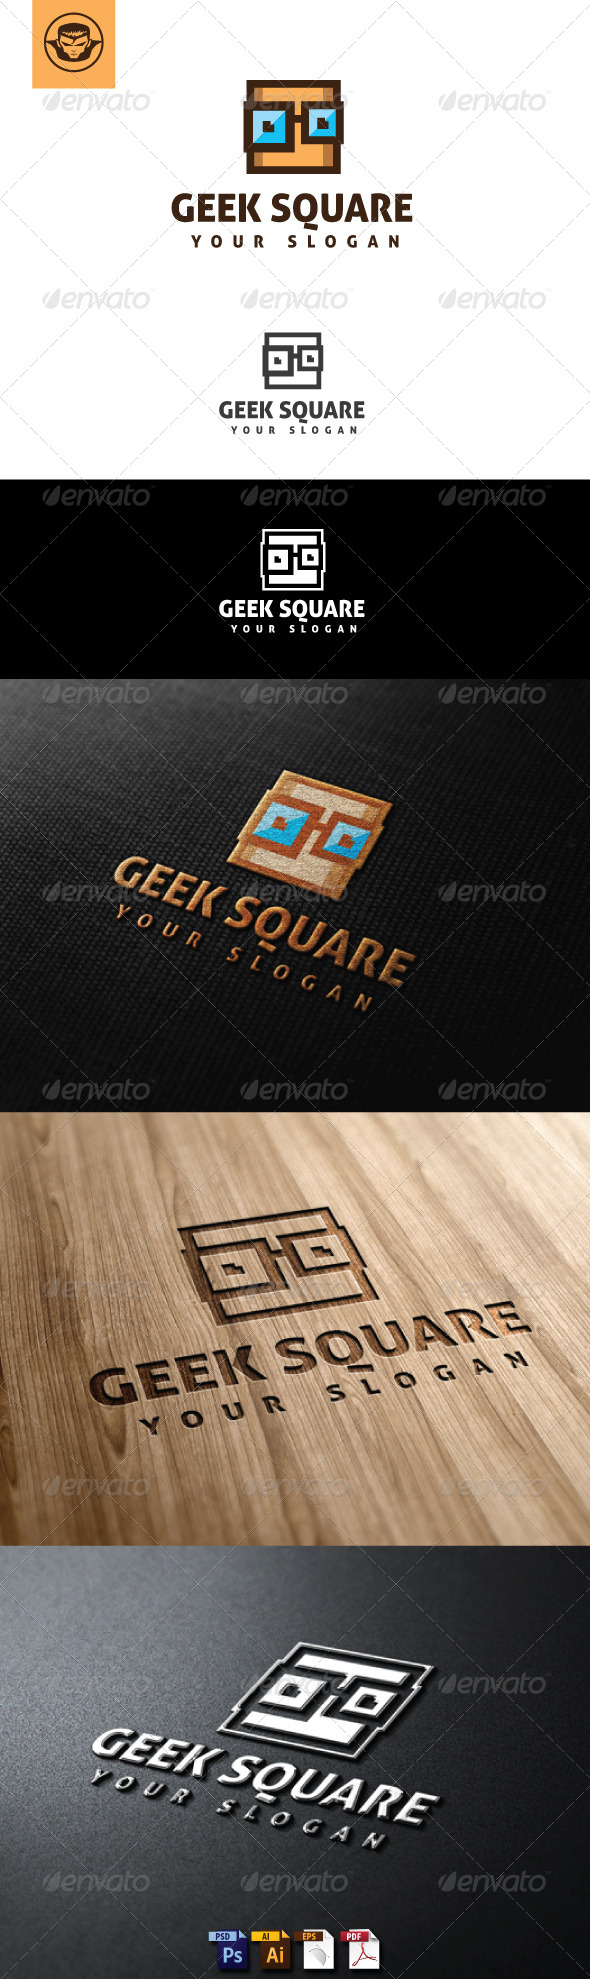 Geek Square Logo Template